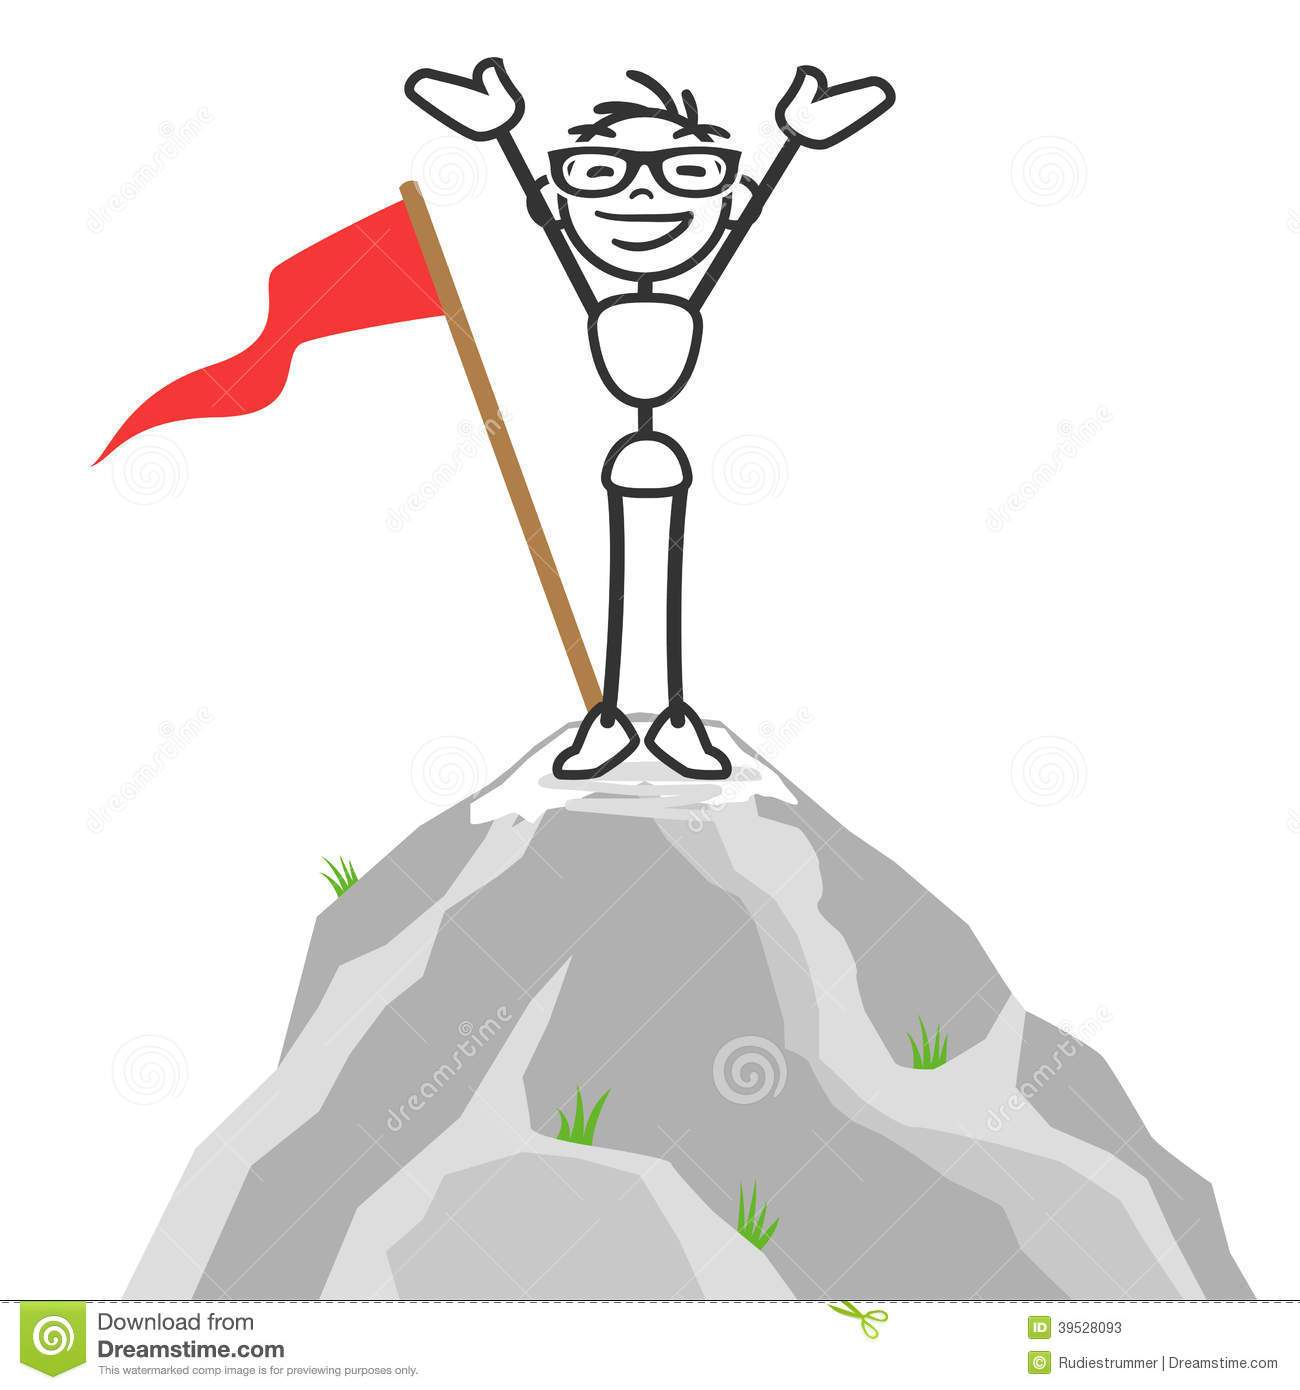 Clipart mountain top picture transparent Mountain top clipart 3 » Clipart Portal picture transparent